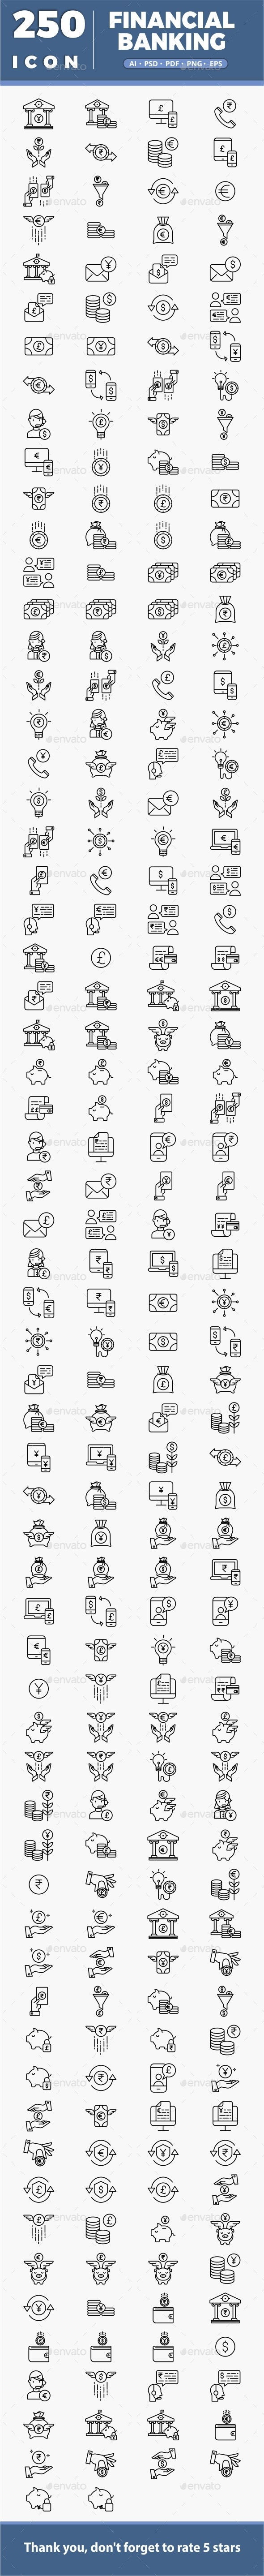 250 Financial Banking - Icons